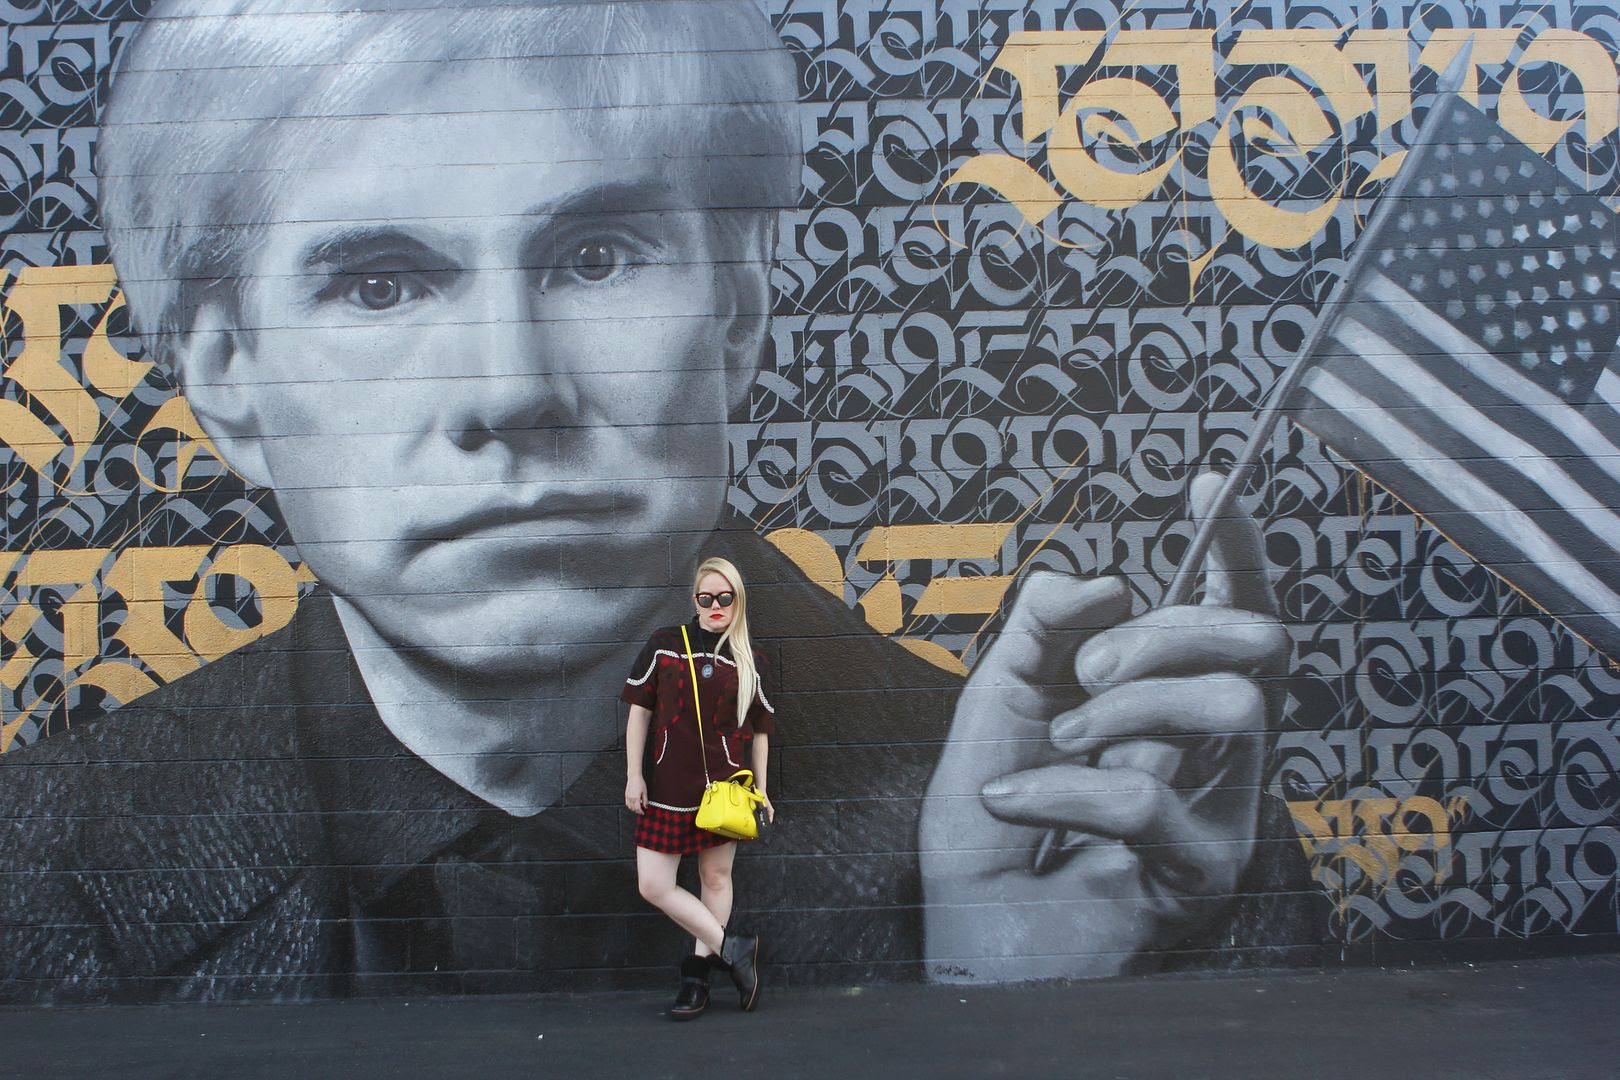 photo andywarhol-losangeles-grafitti-beckermangirls-coach_zps04179fb5.jpg